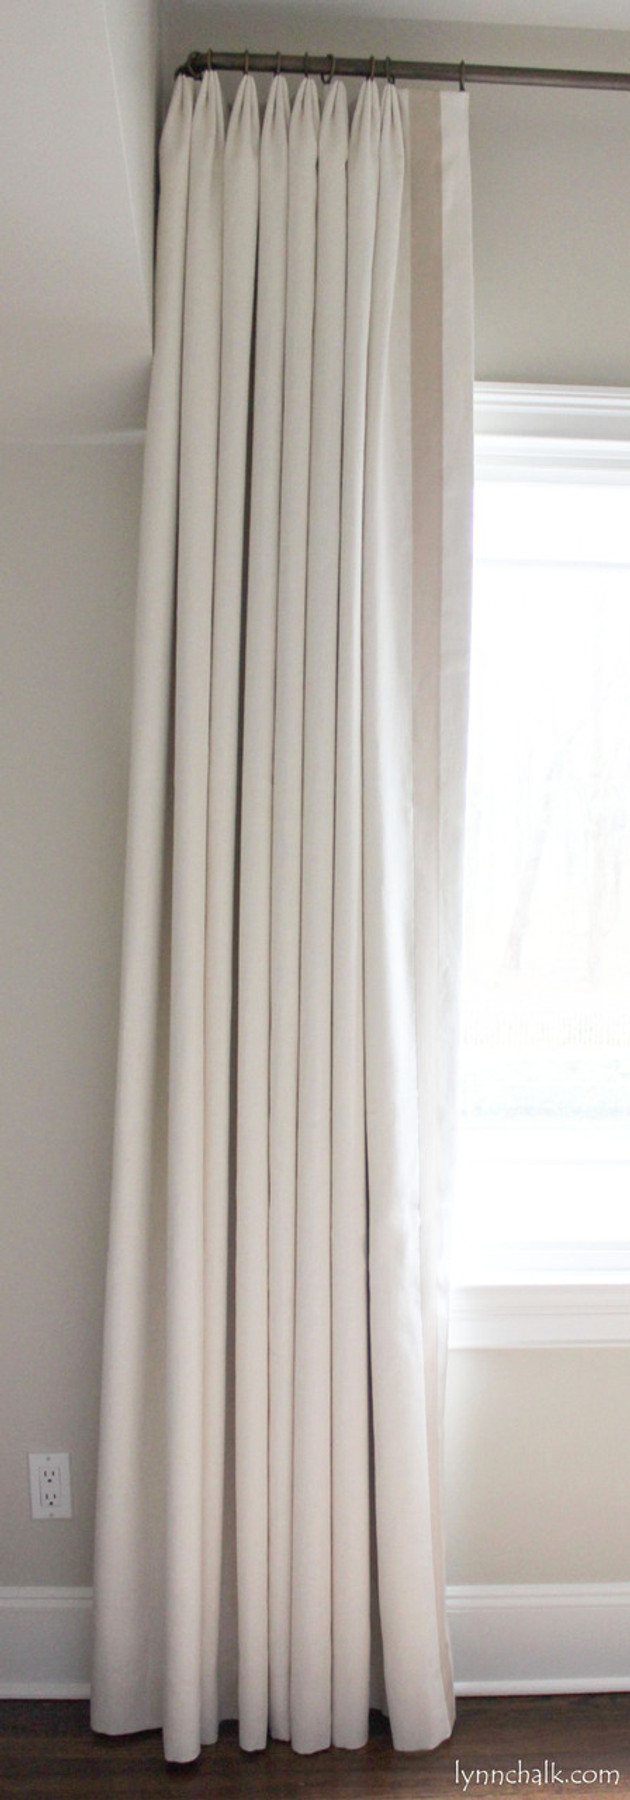 """Kravet Dublin Linen in Creme with 2"""" Wide Samuel & Sons Grosgrain Ribbon Trim in Sand set in 1 1/2"""" from edge.  Drapes are Double Width with Euro Pleat."""